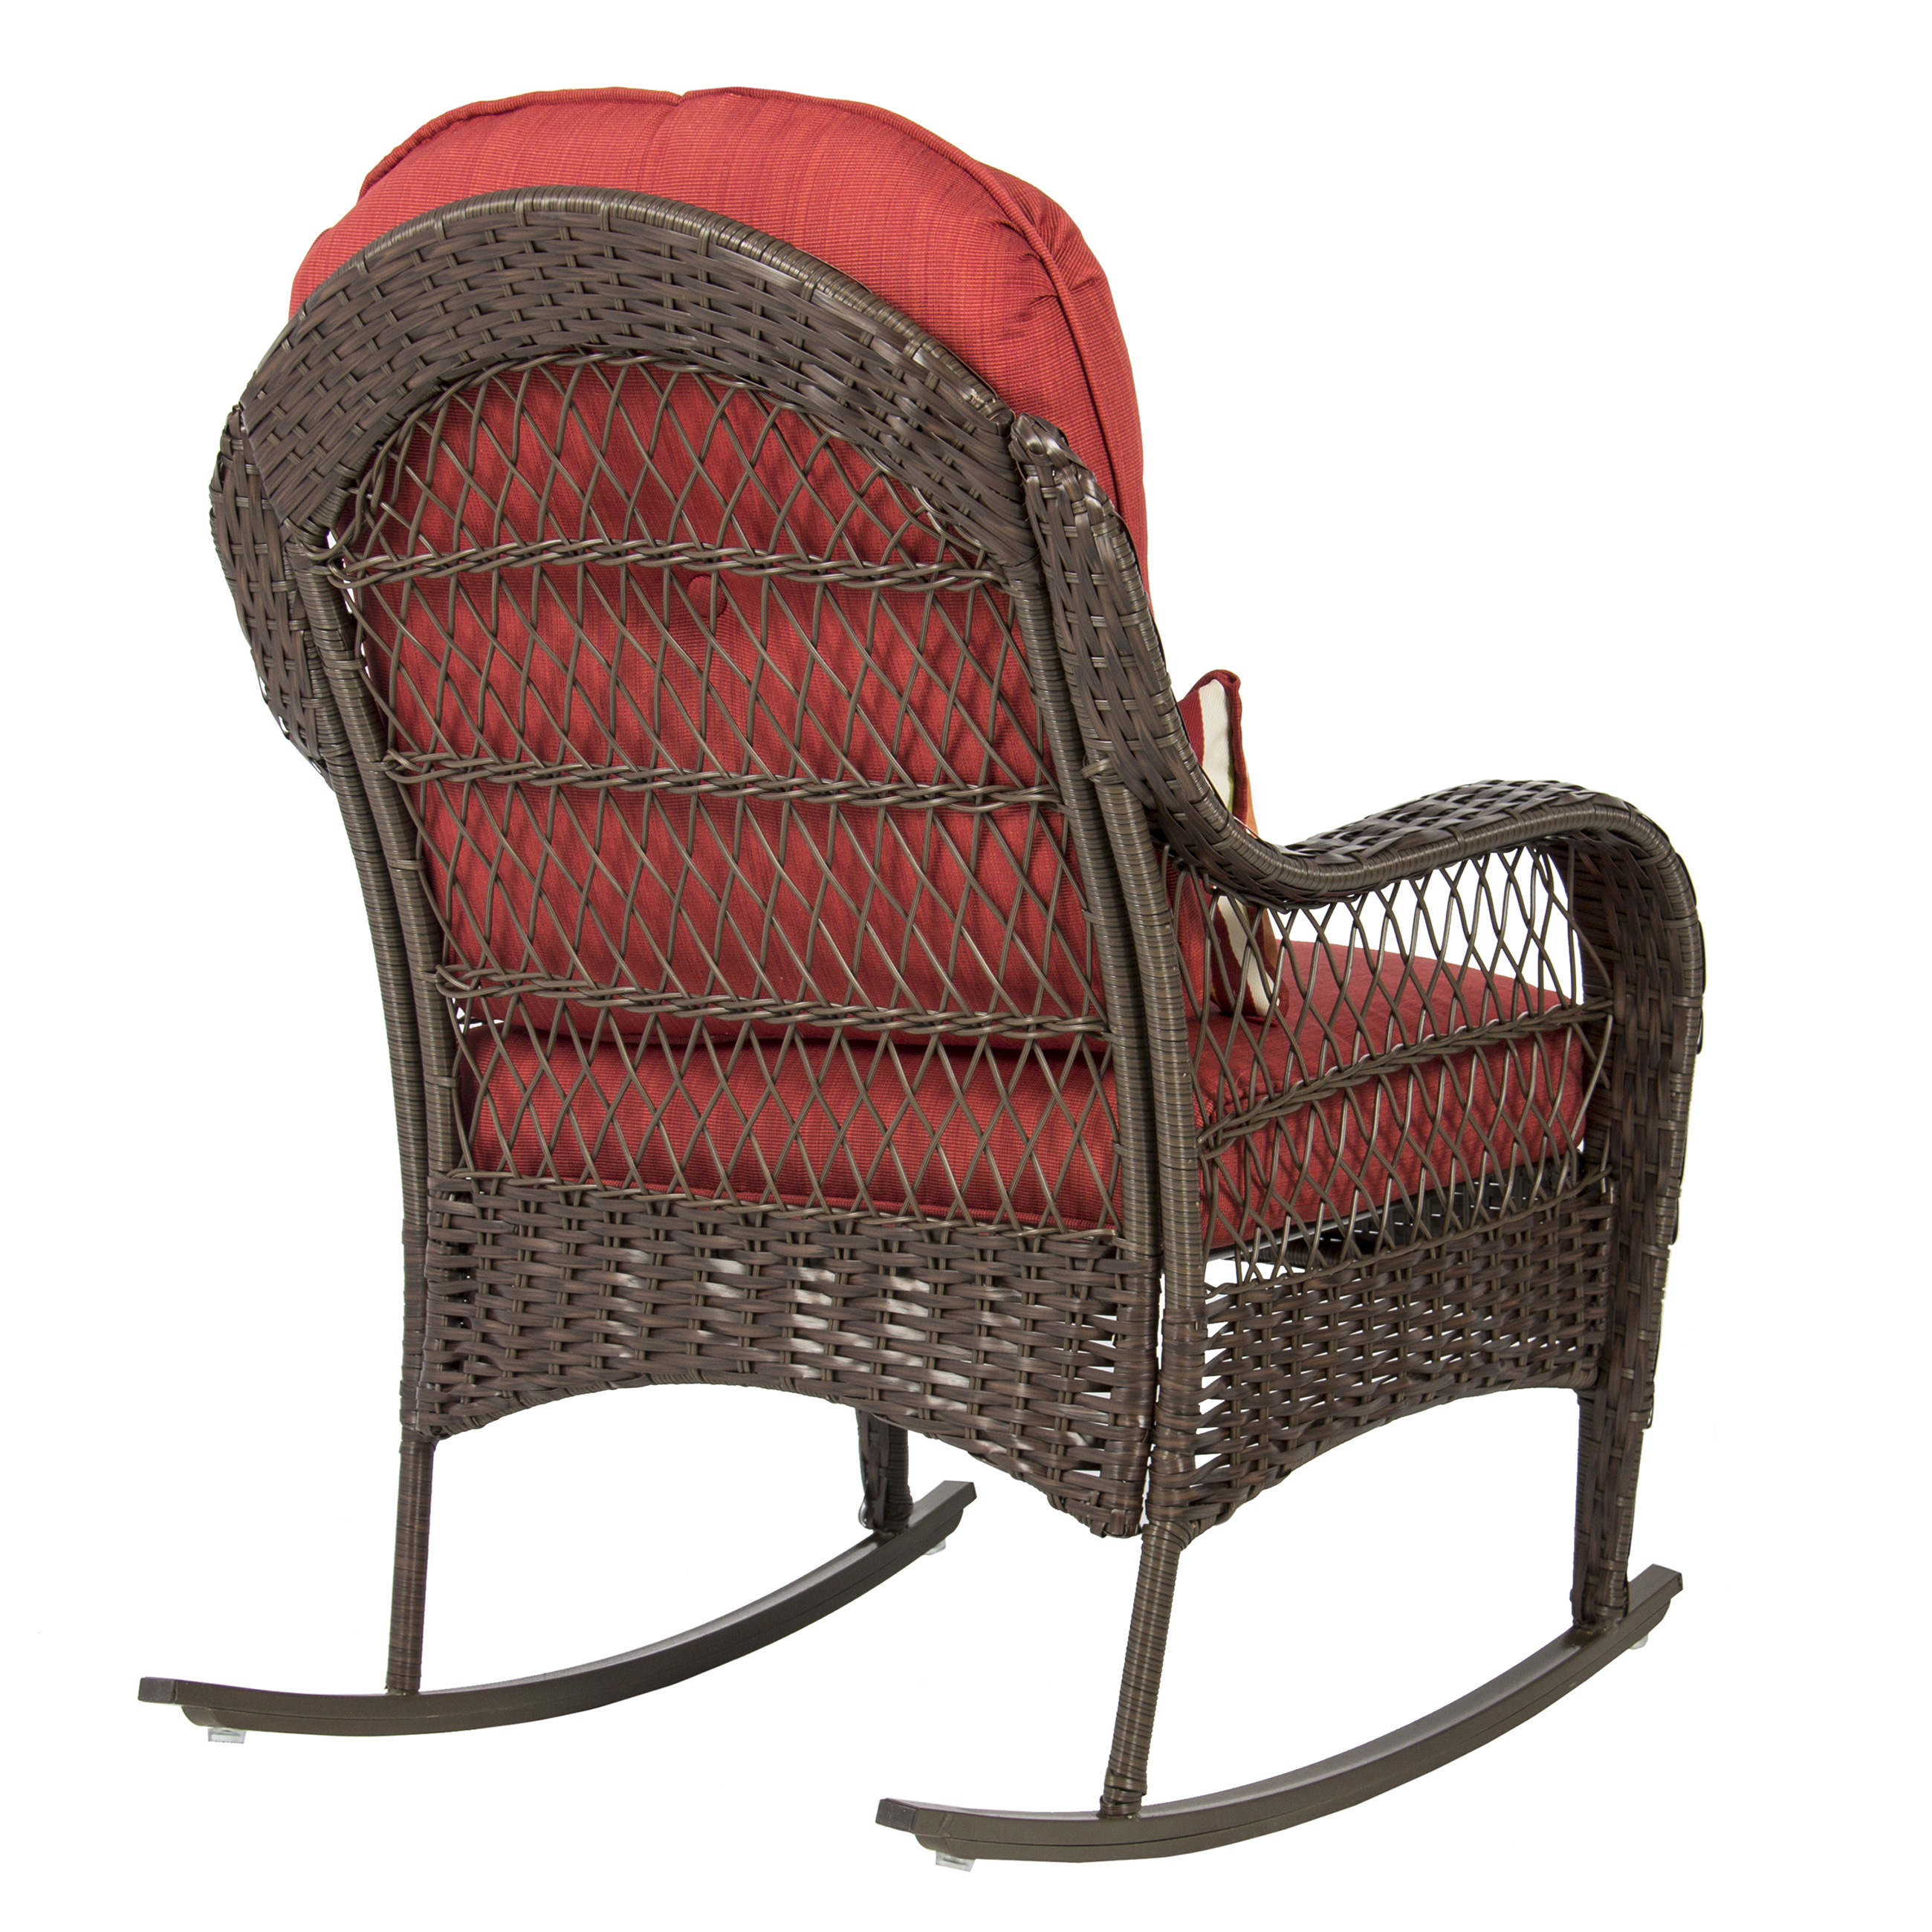 Best Choice Products Wicker Rocking Chair Patio Porch Deck All